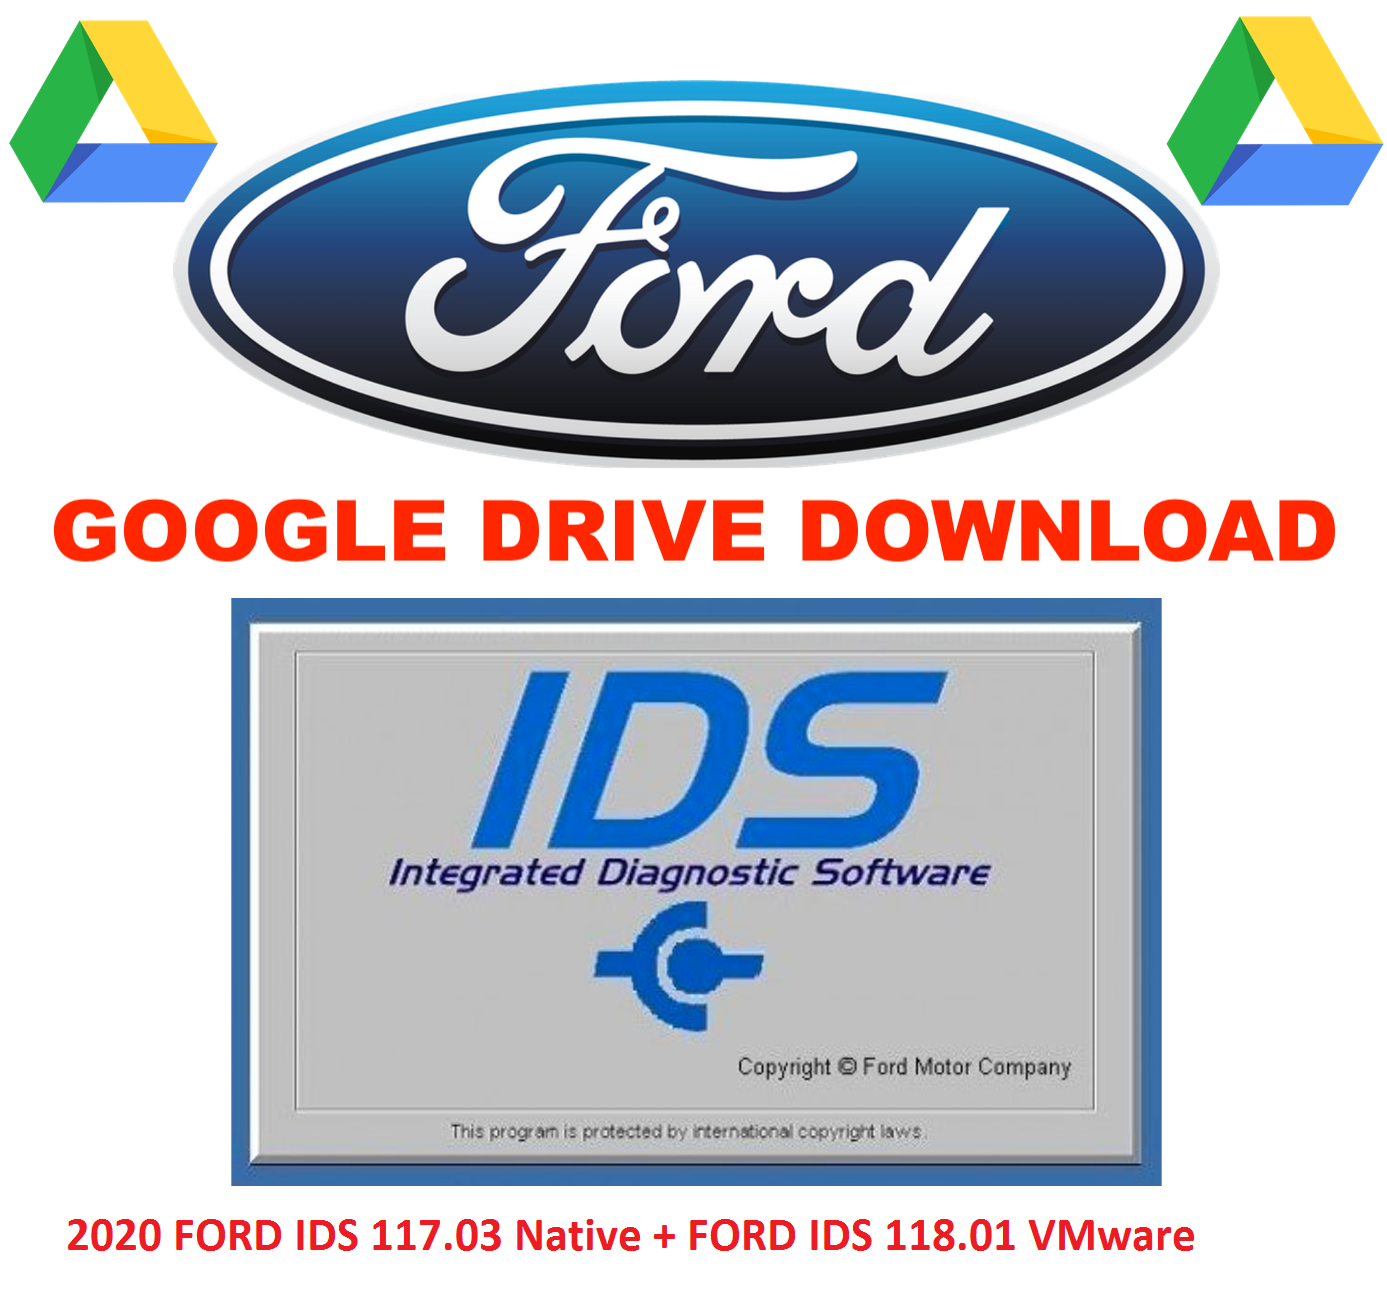 FORD IDS 118.04 & calibration Native installation 2020 + Ford IDS 108.01 VMware